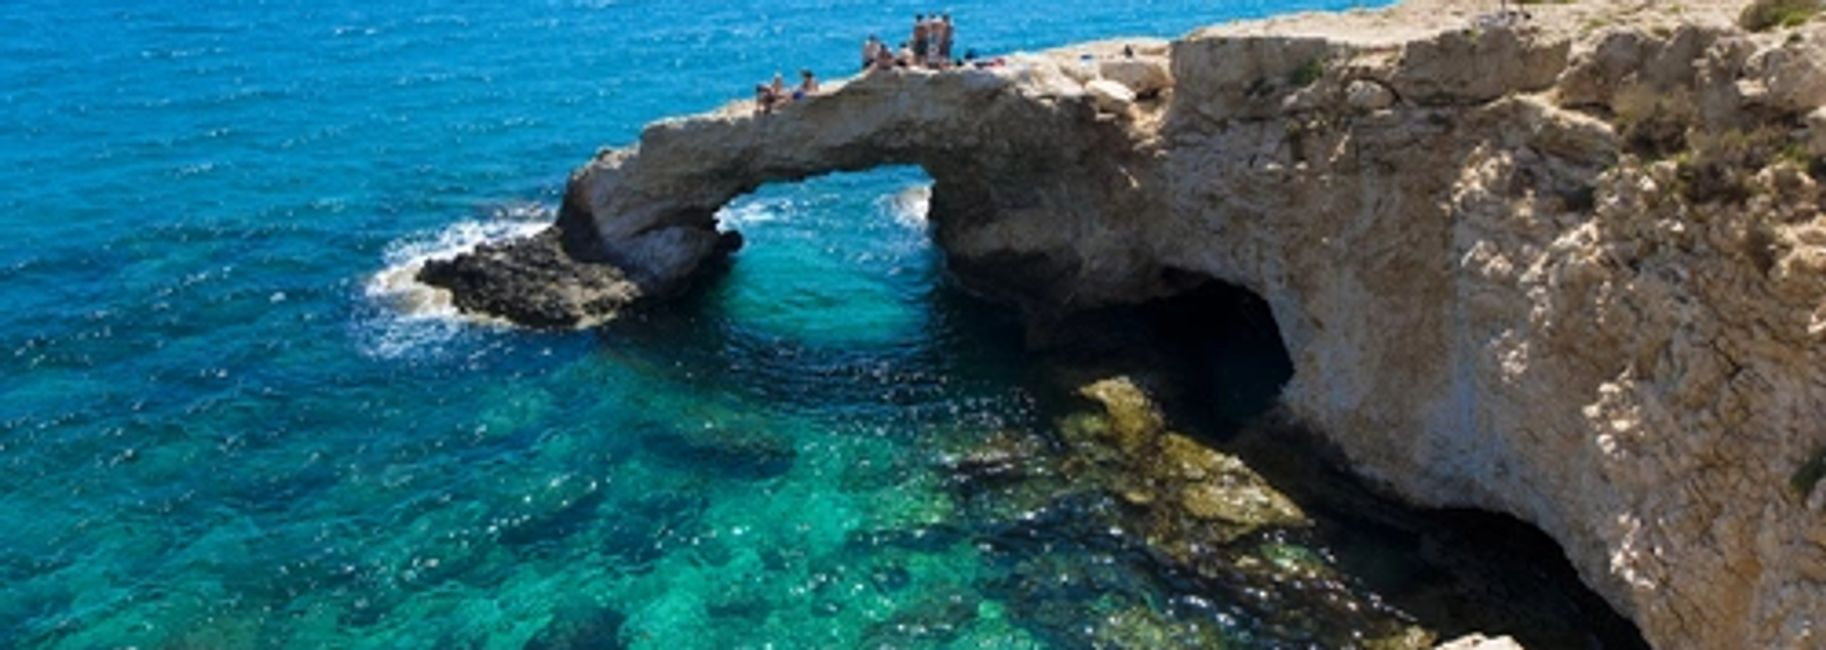 Traveler's Tongue Cyprus - According to legend, the Greek goddess of love and beauty, Aphrodite,...